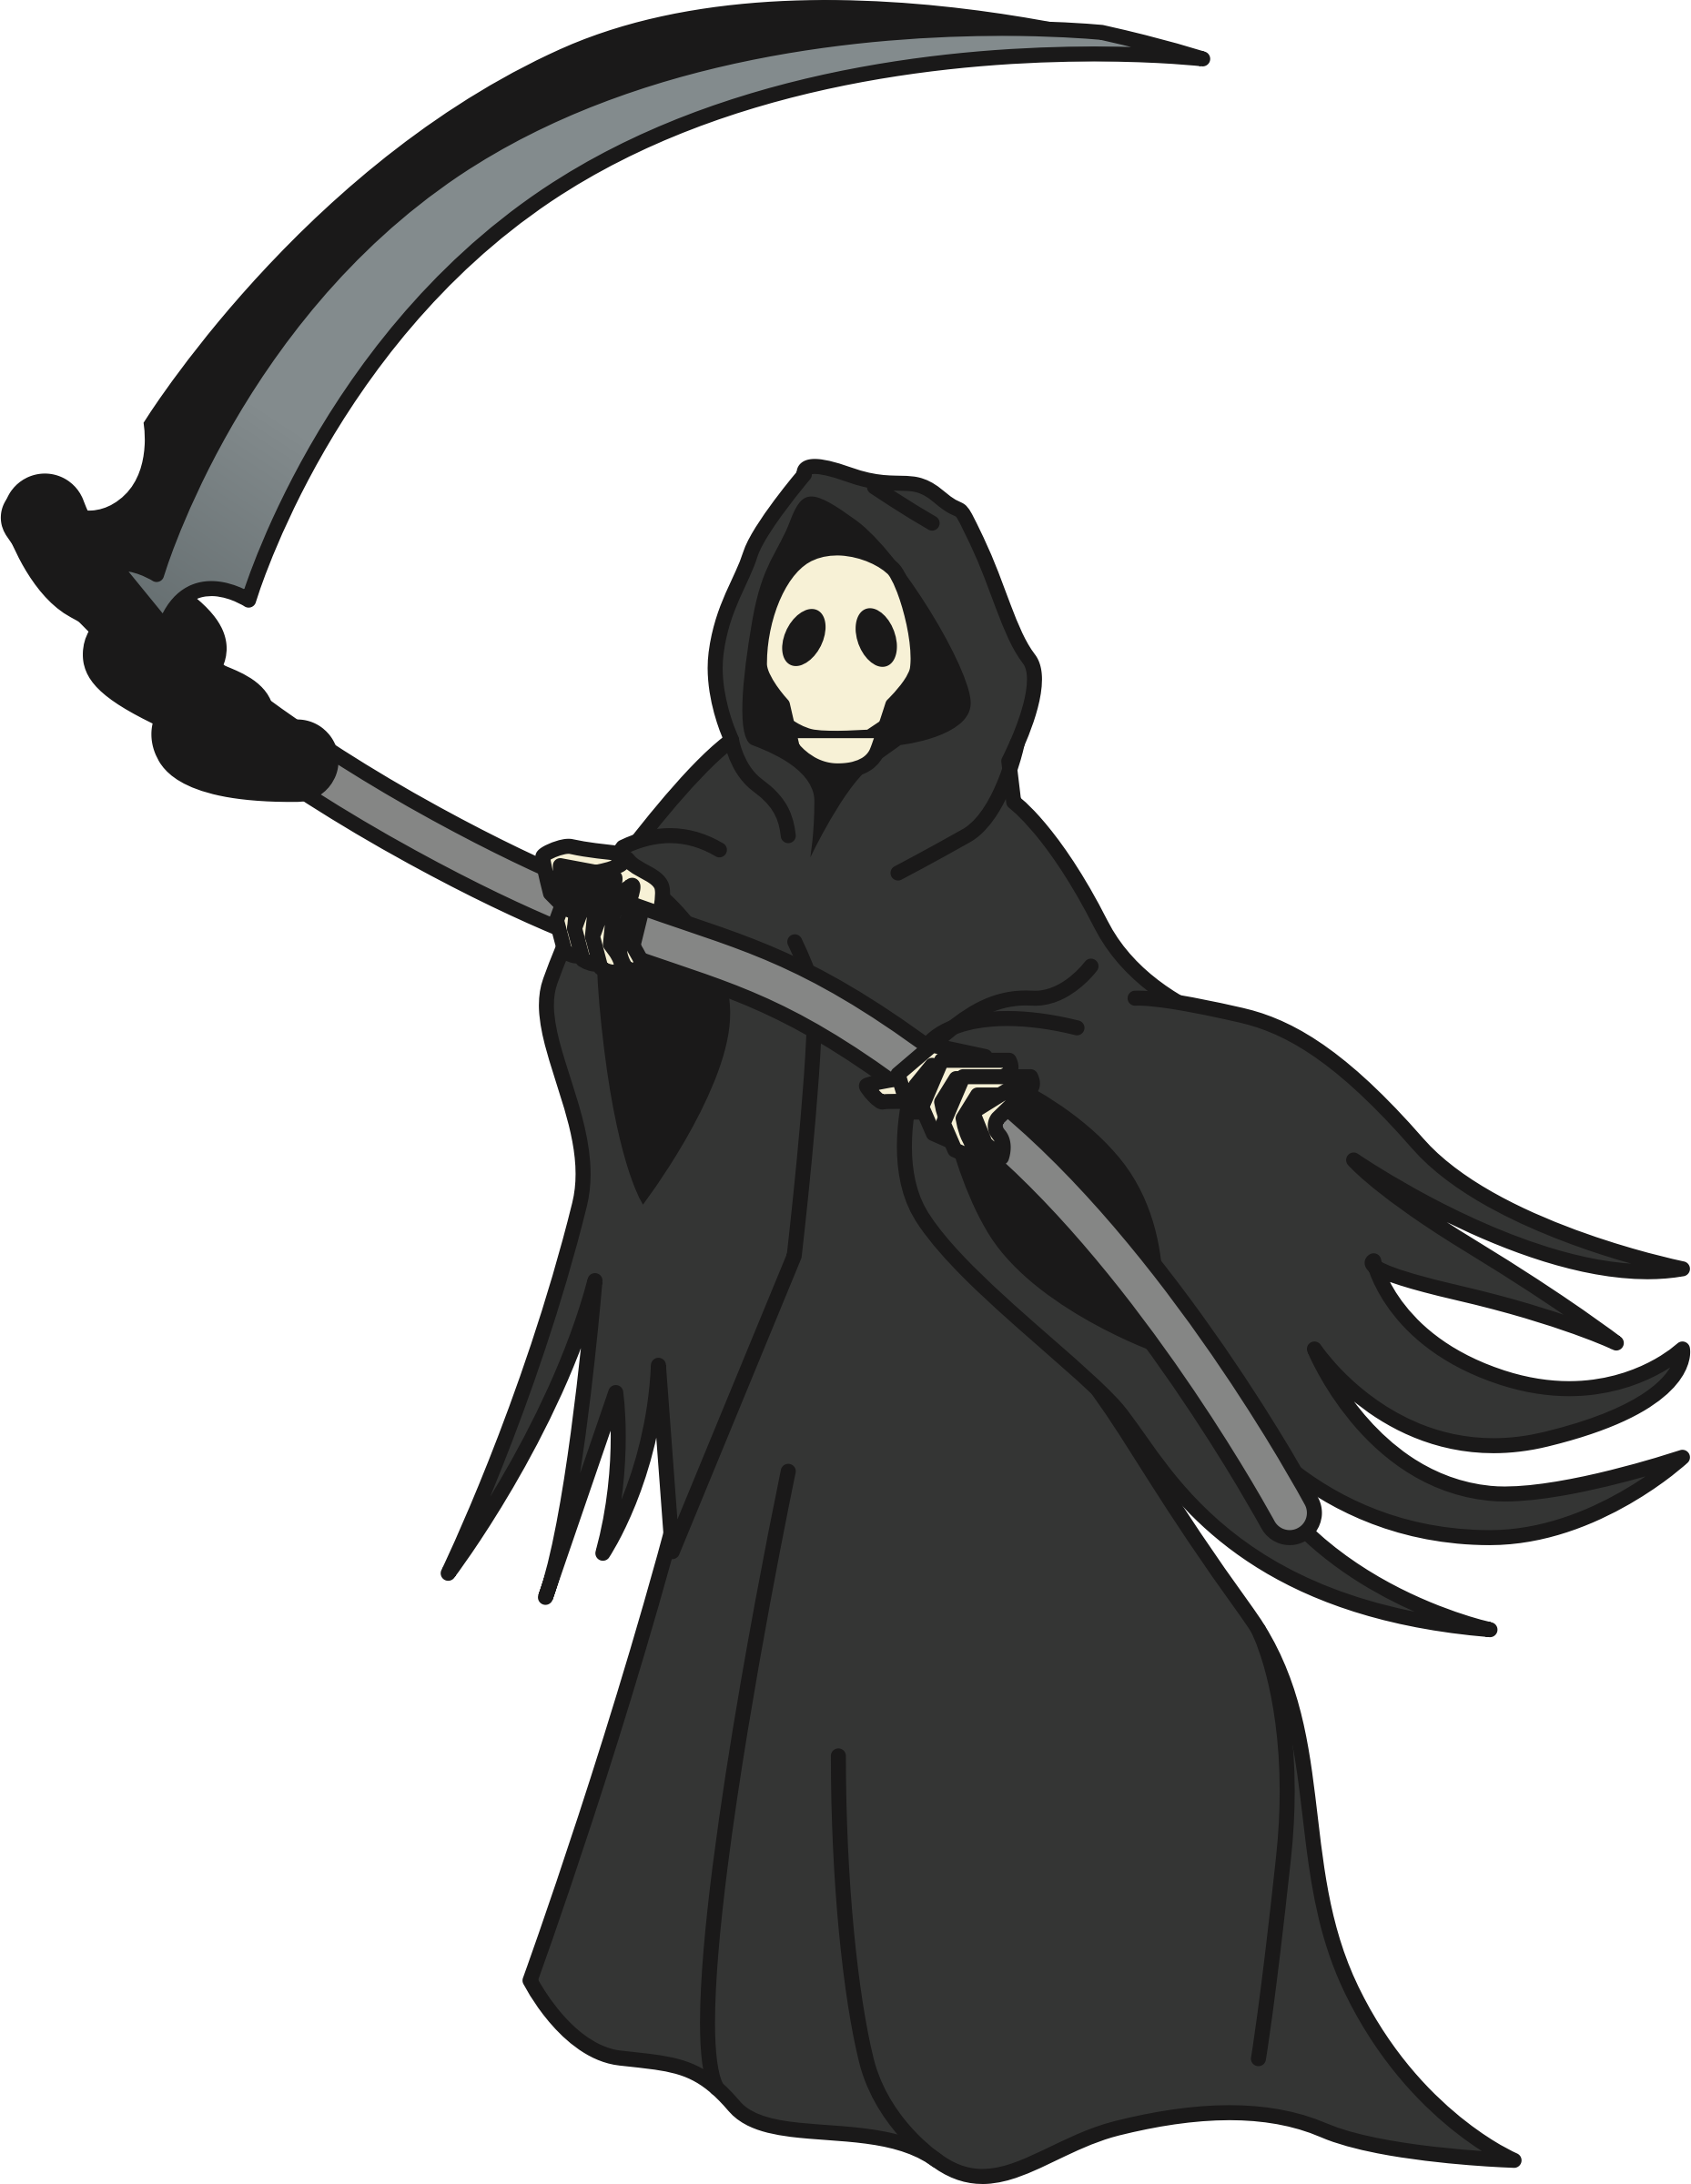 graphic download Big image png. Grim reaper clipart